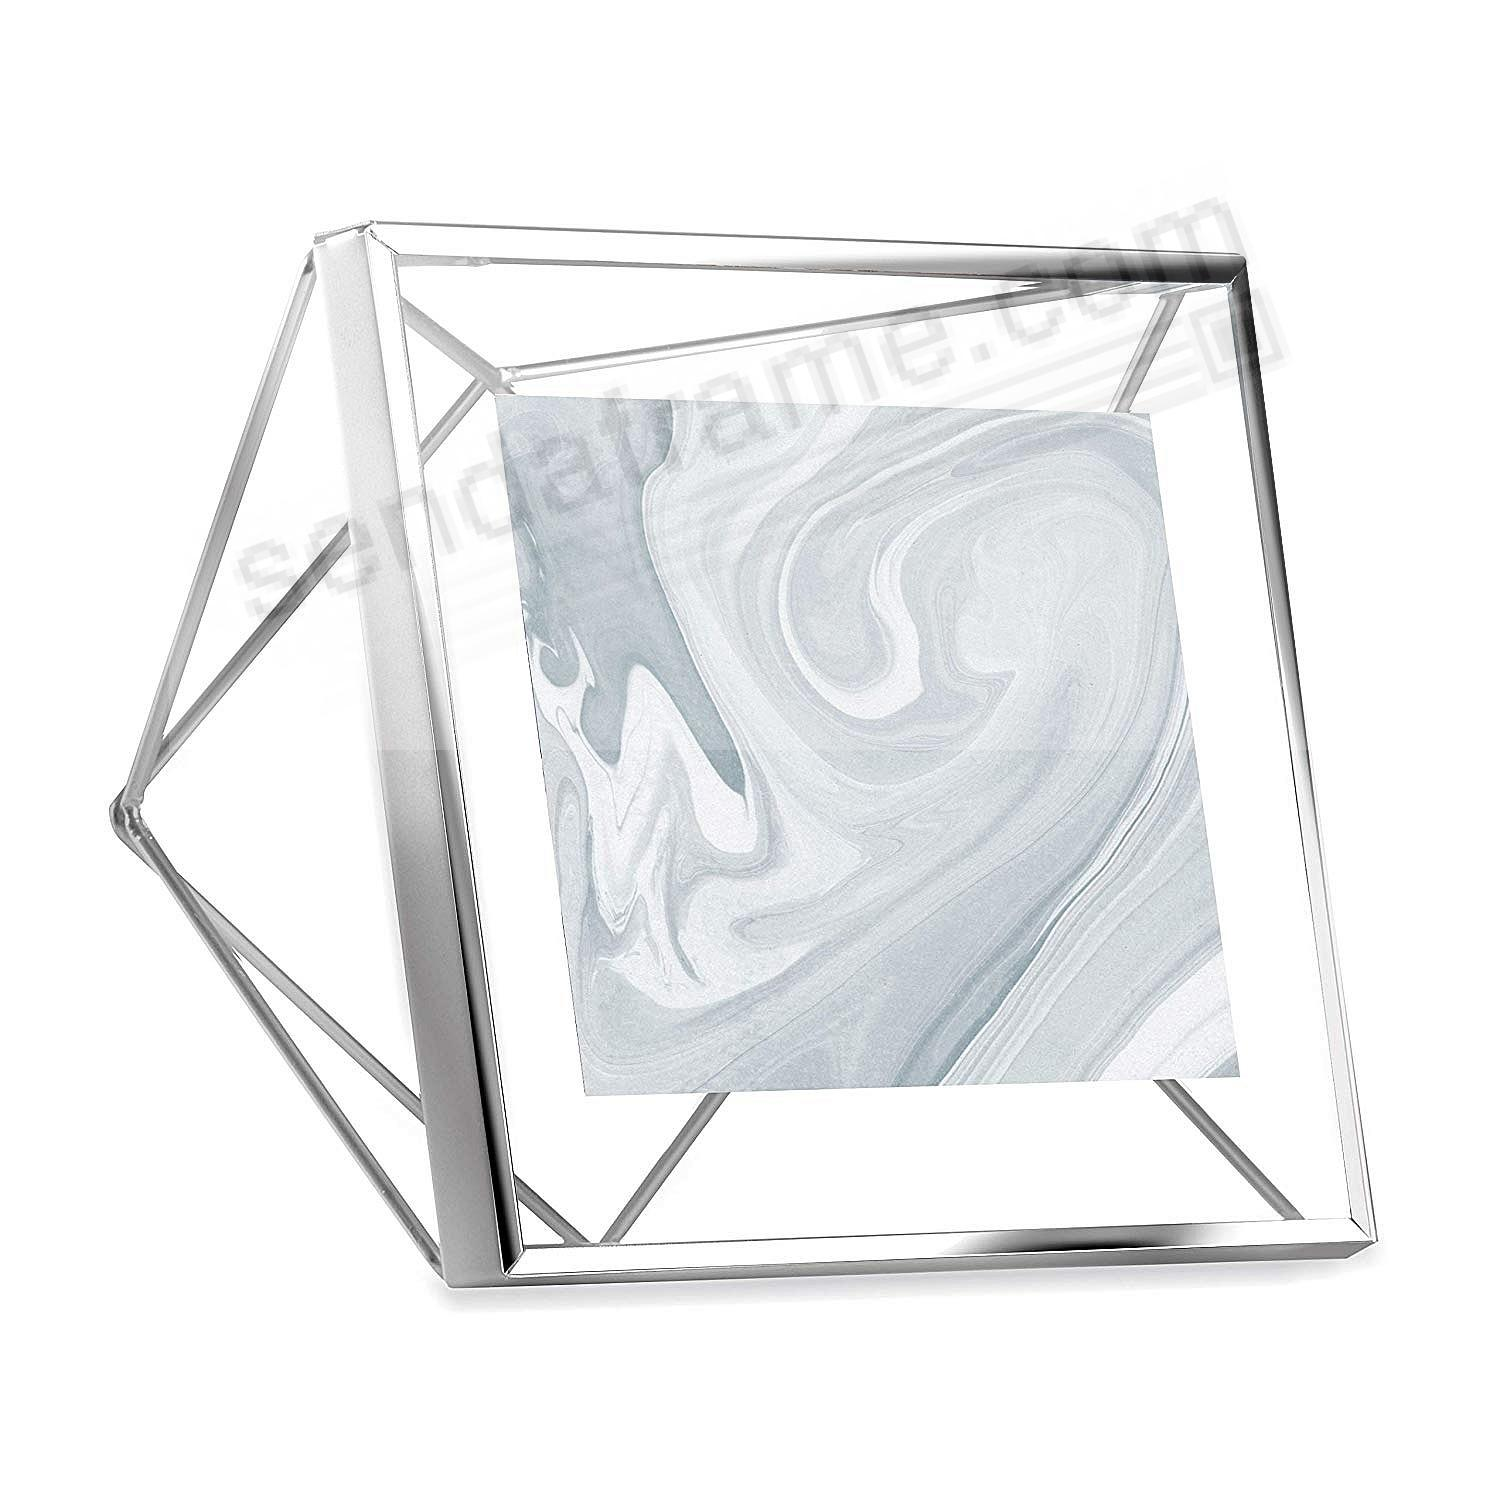 The Original PRISMA Photo Display Chrome 4x4 frame by Umbra®